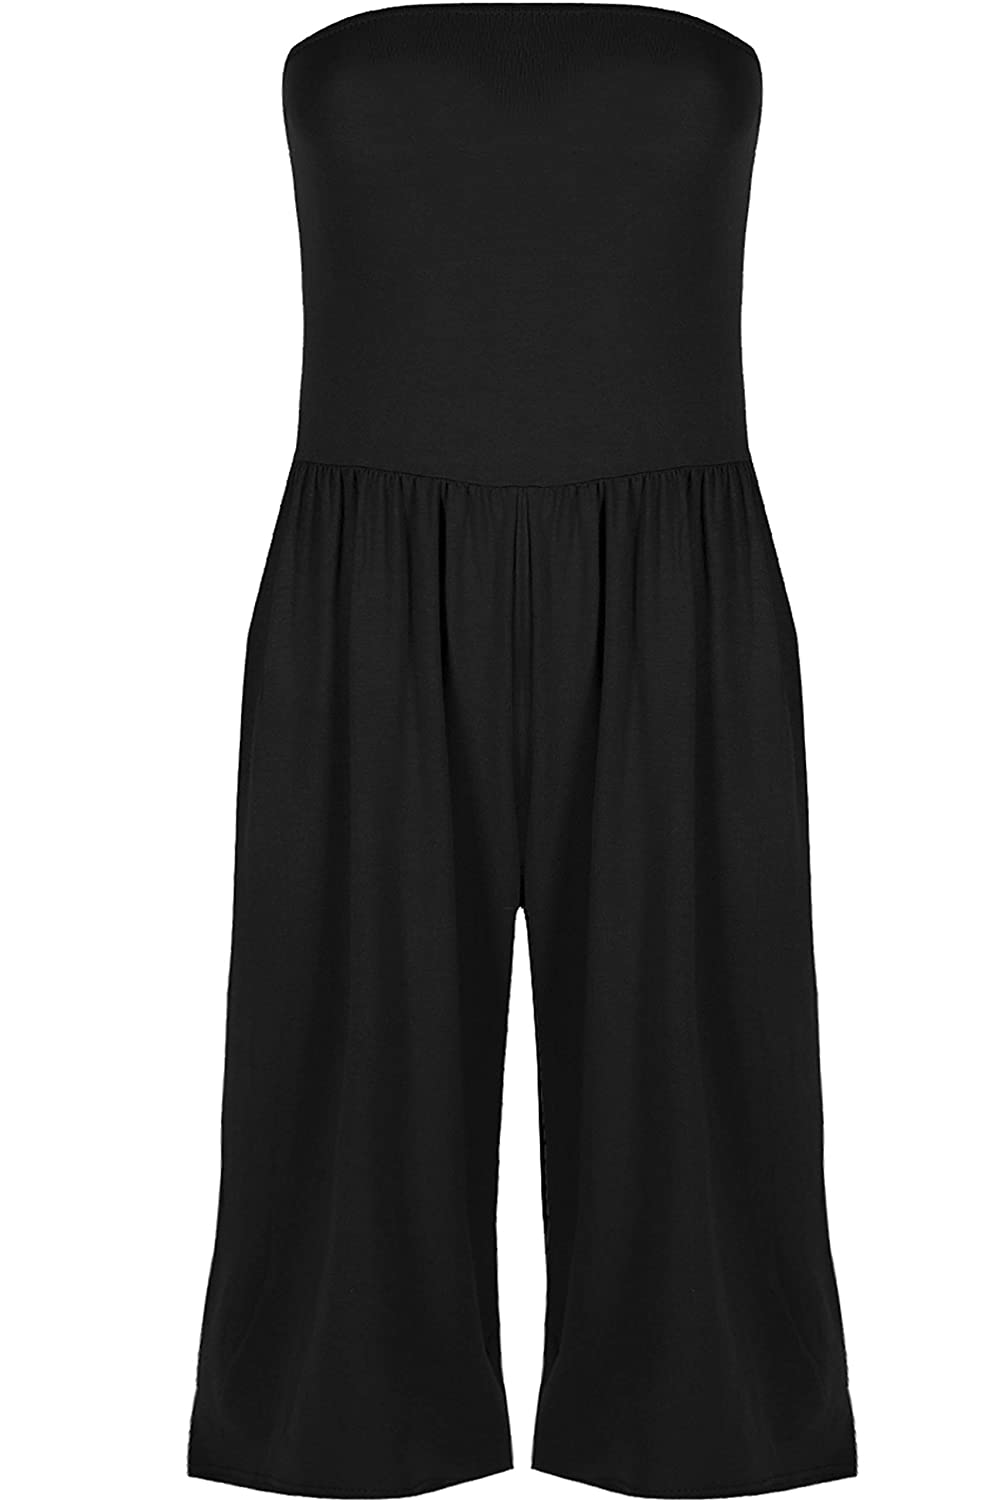 Fashion Star Womens Boobtube Ruched Palazzo Jumpsuit Wide Legs Baggy Pants Playsuit